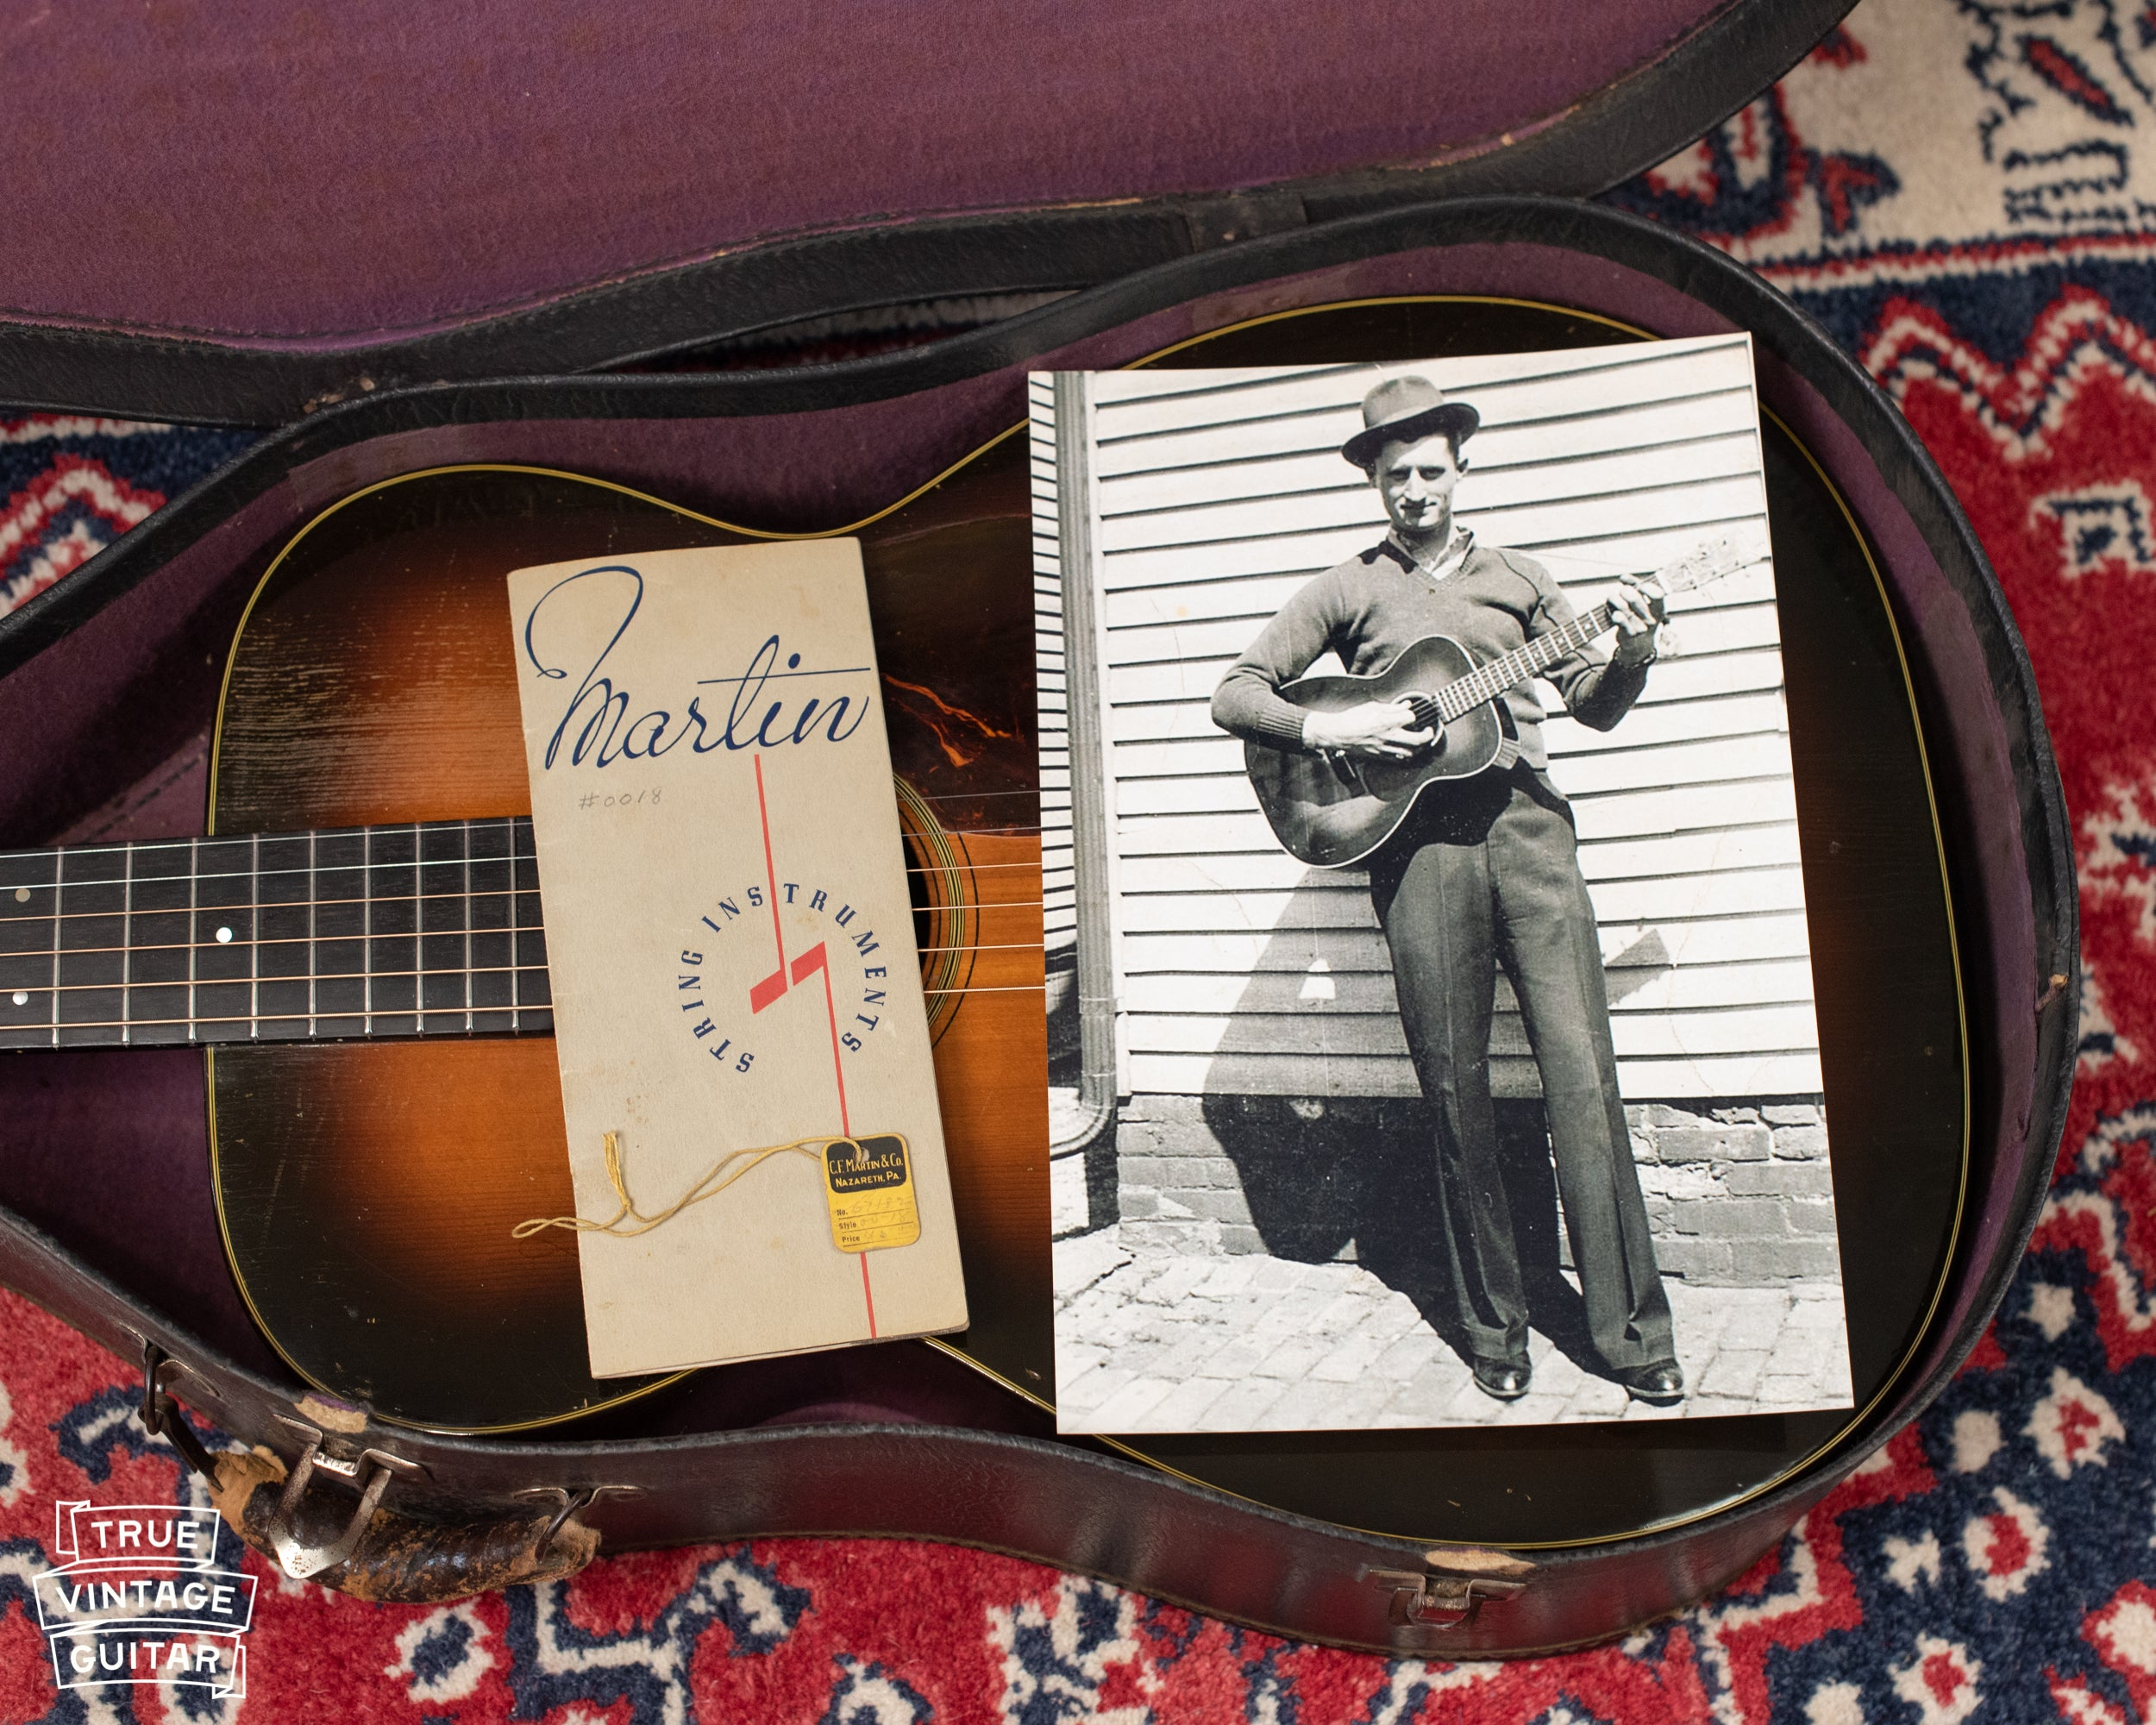 1937 Martin catalog, yellow square hang tag, picture with original owner